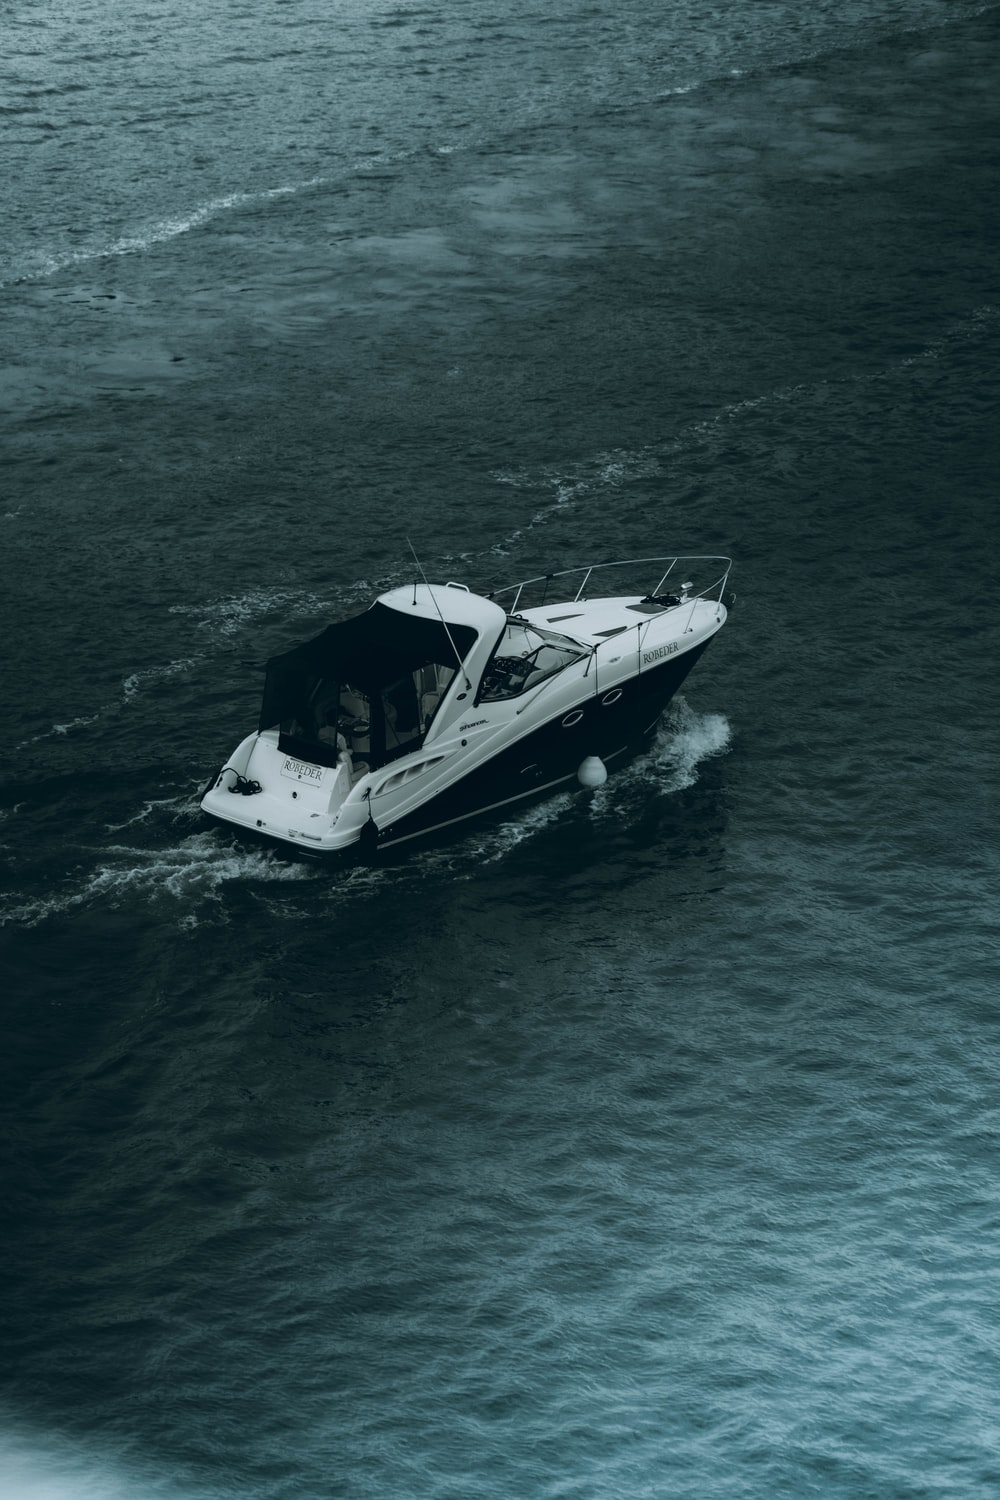 white and black yacht on sea during daytime